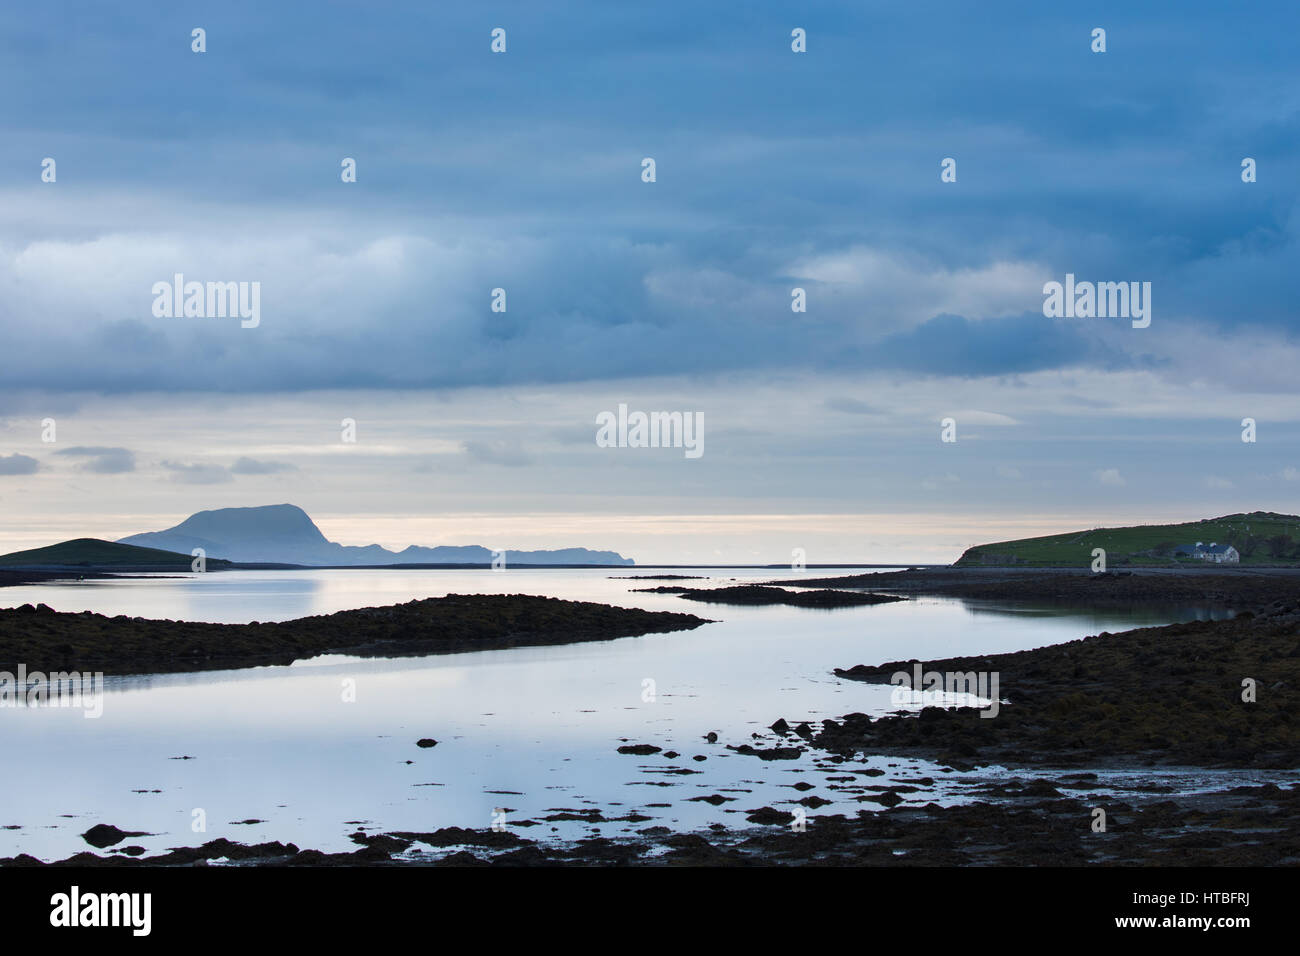 A solitary cottage on the shore of Clew Bay with Clare Island beyond, Co Mayo, Ireland - Stock Image